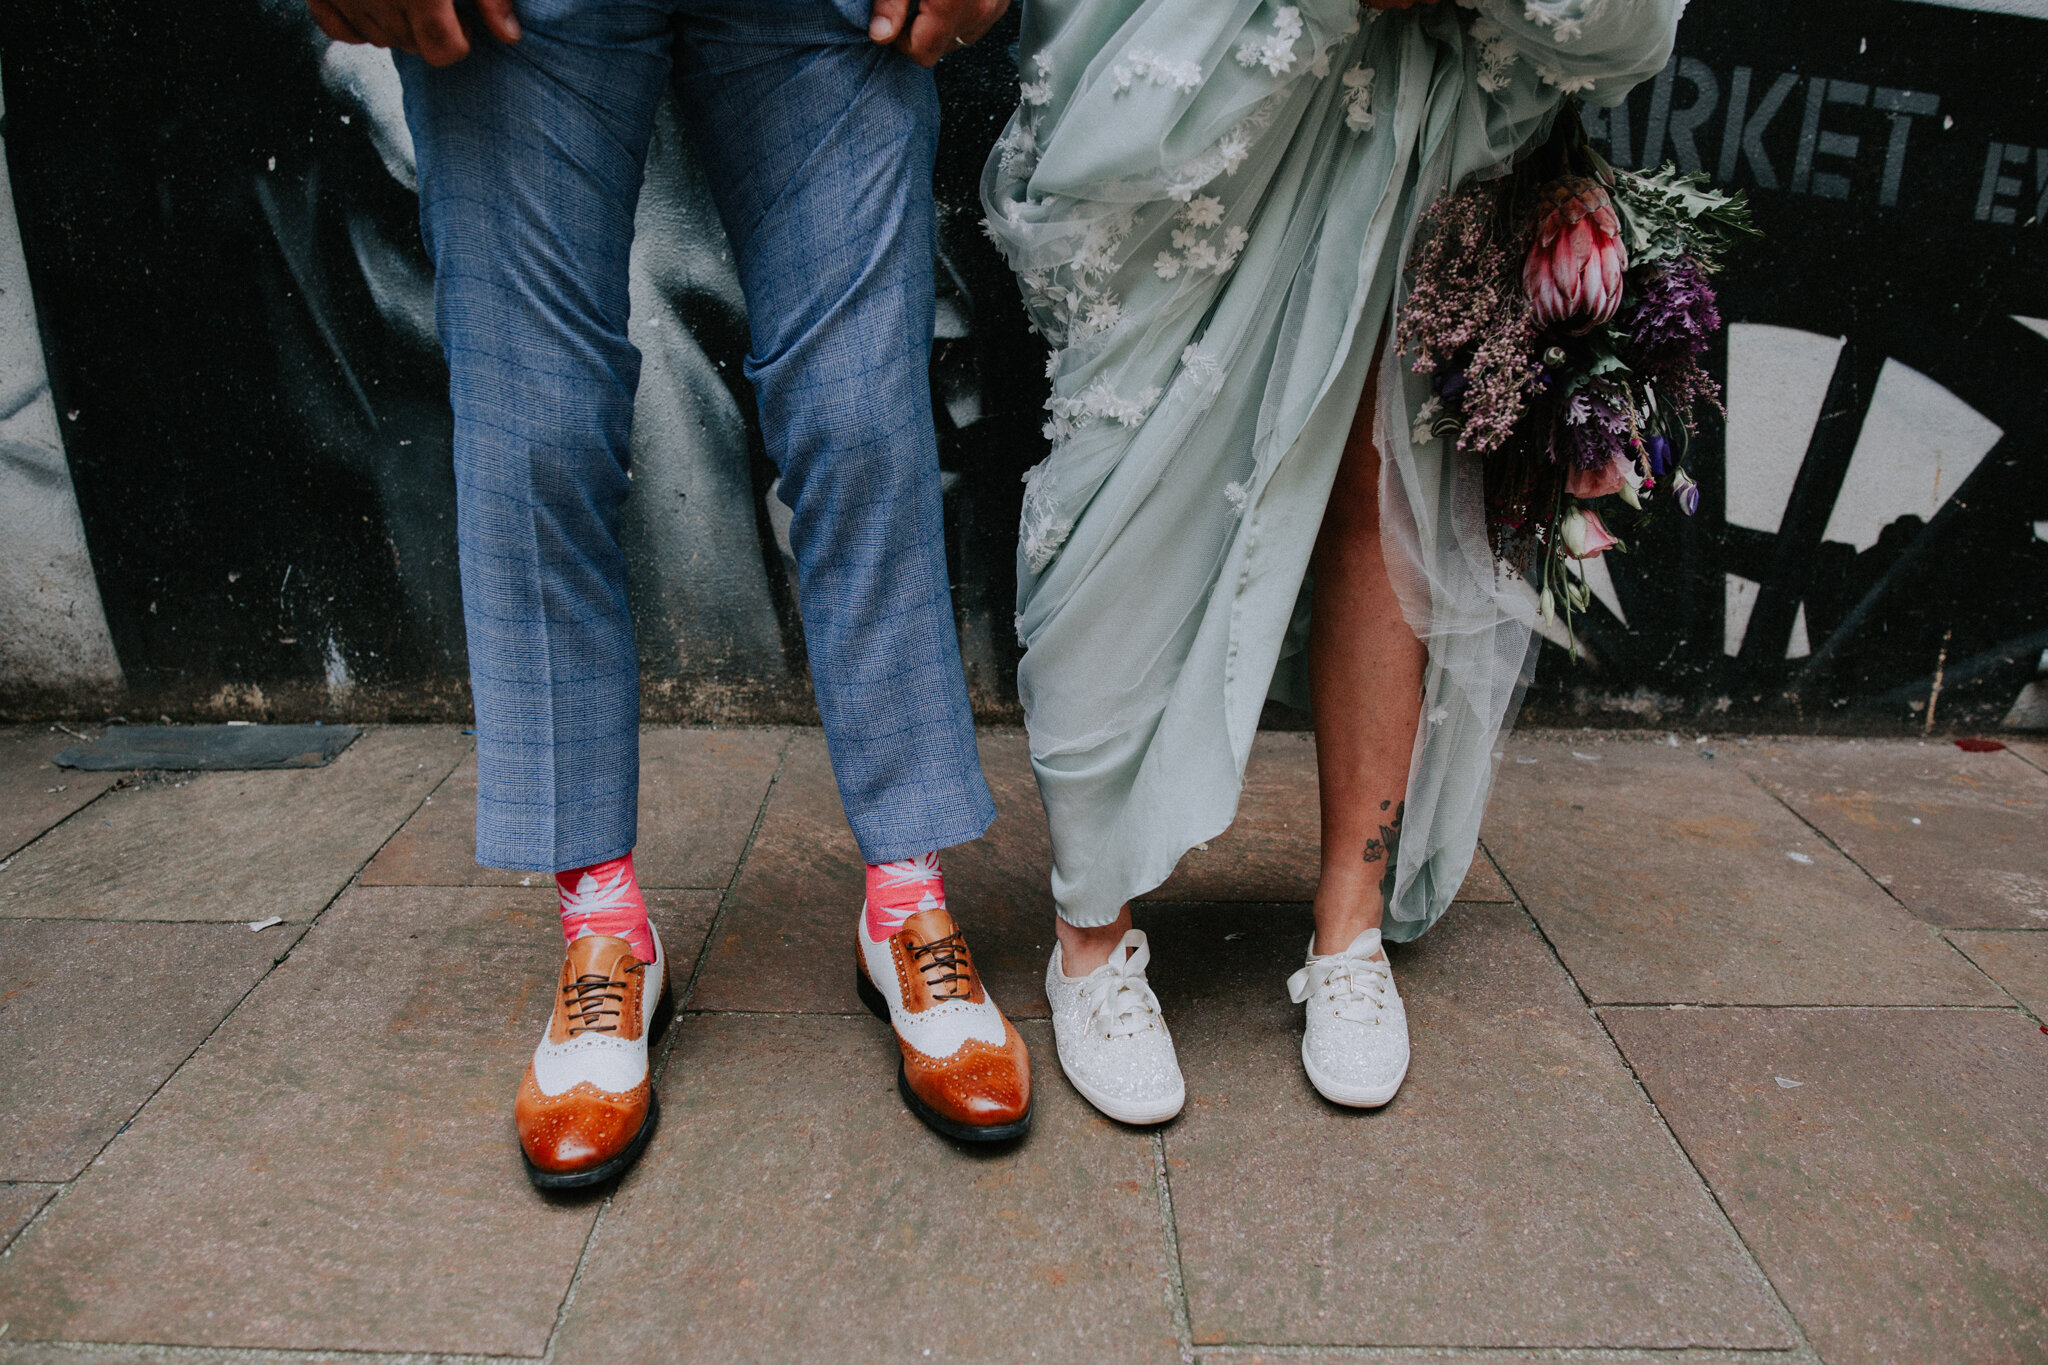 Close up shot of the alternative wedding groom's shoes and bride's keds